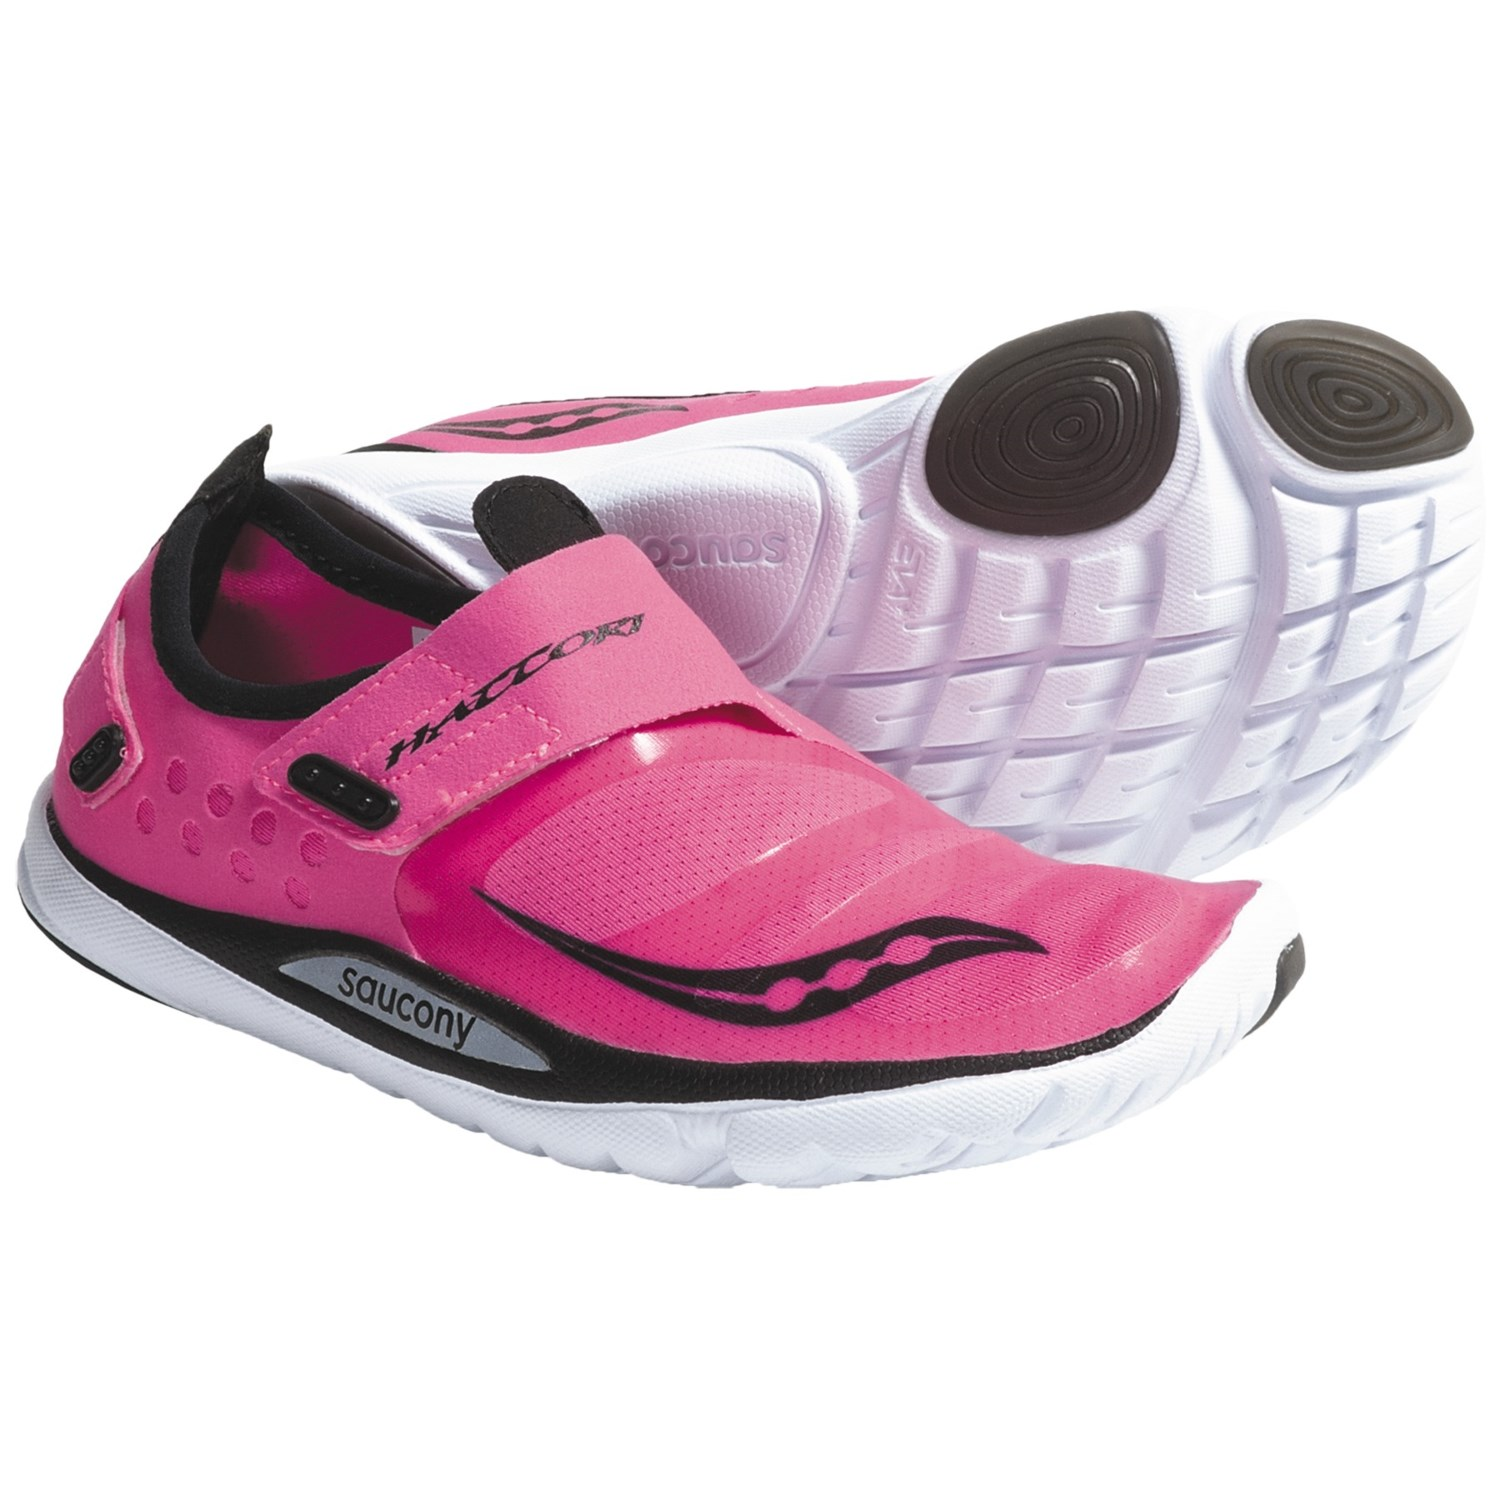 Awesome Shoes For Women An awesome running shoes